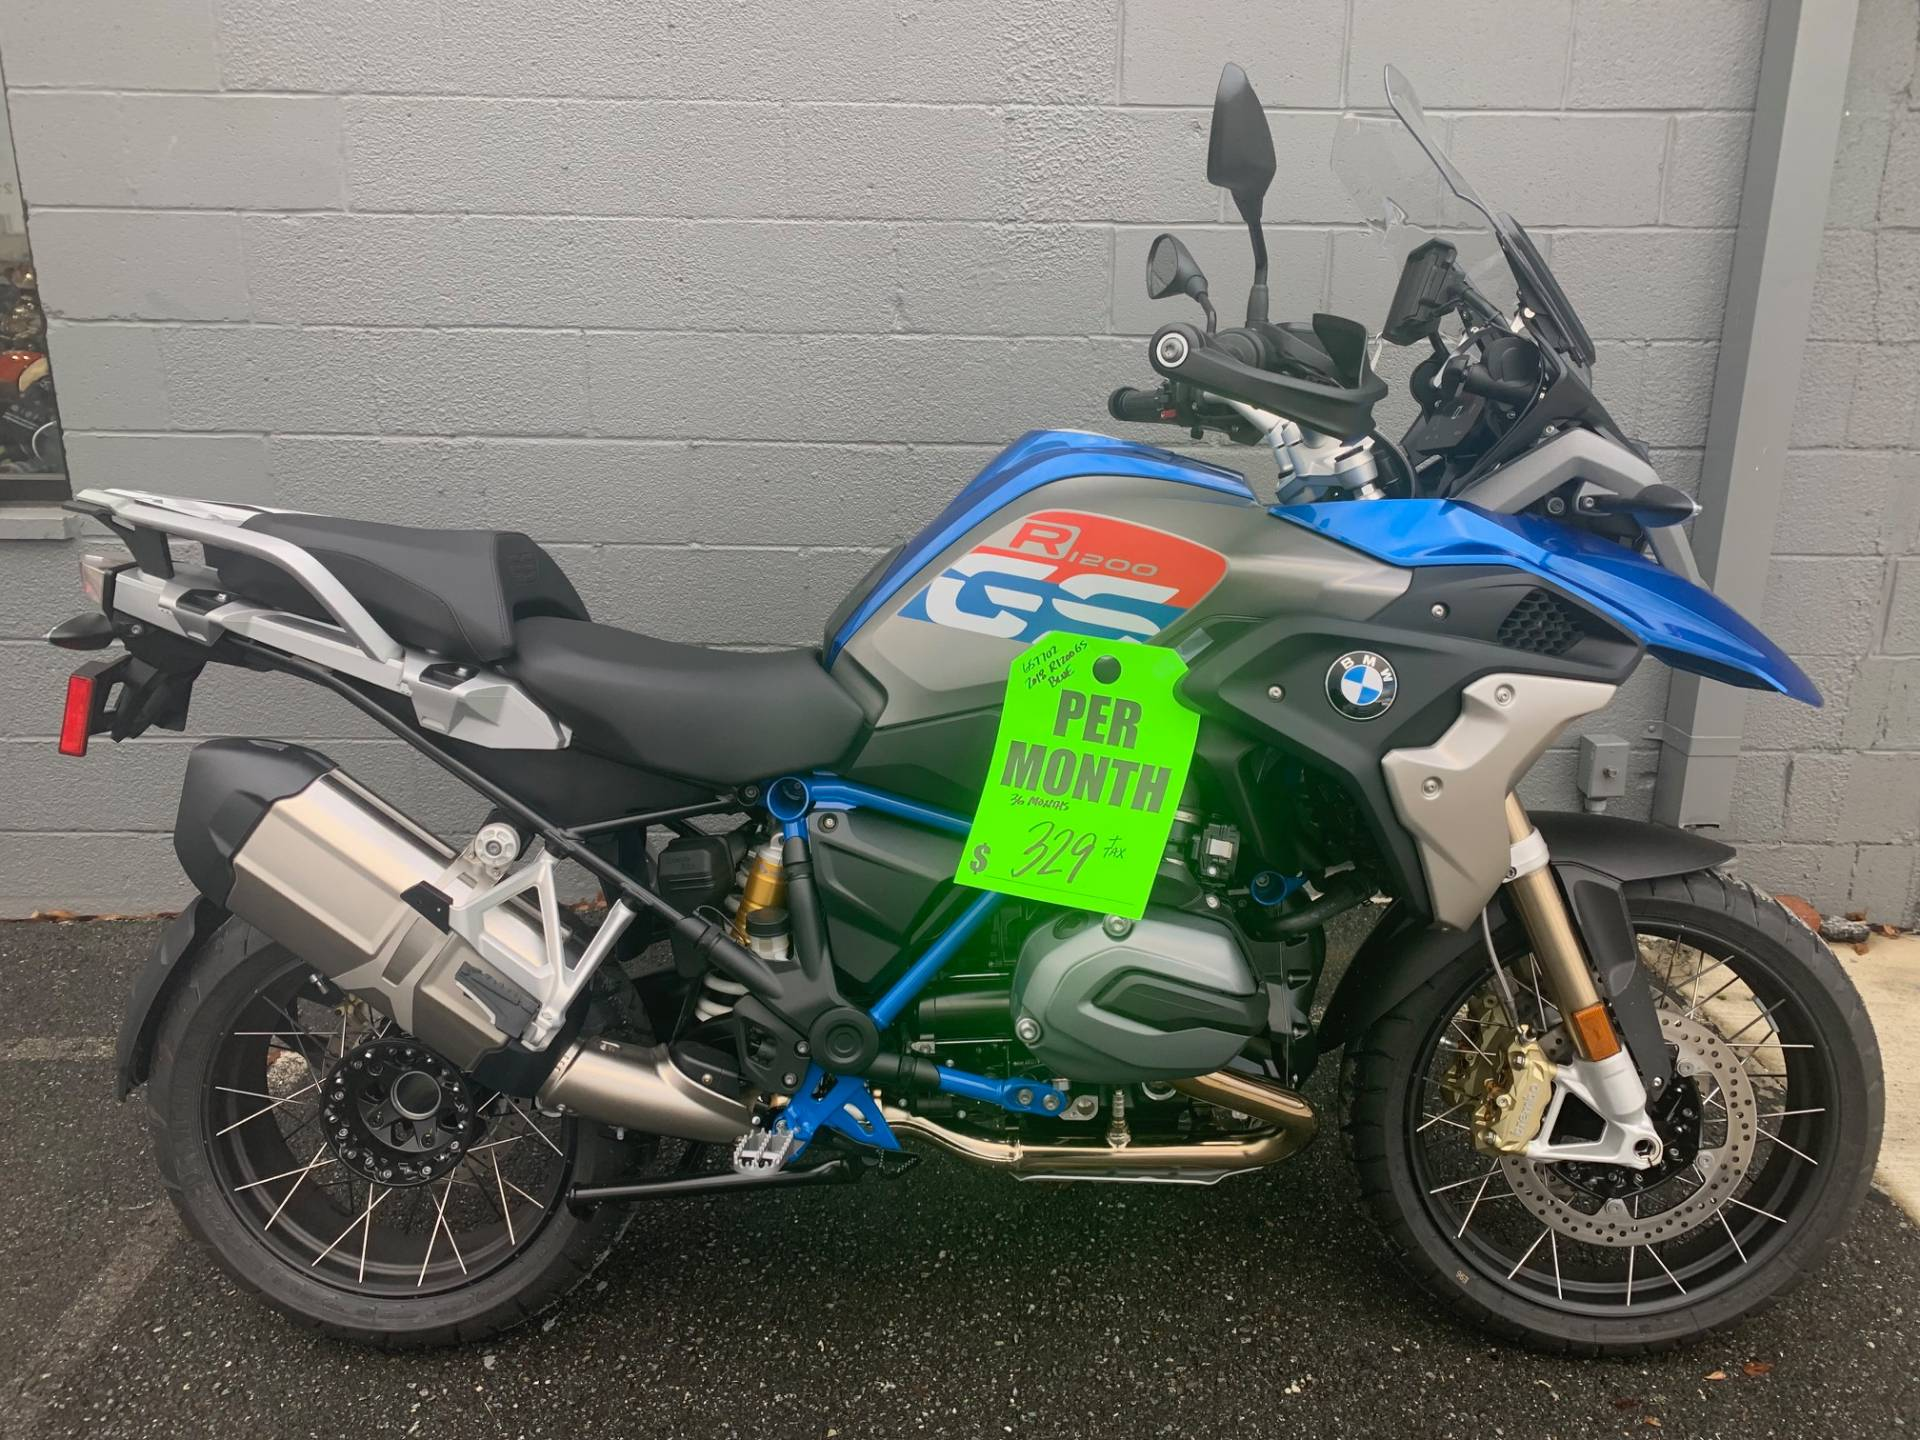 New 2018 BMW R 1200 GS Motorcycles in Gaithersburg, MD